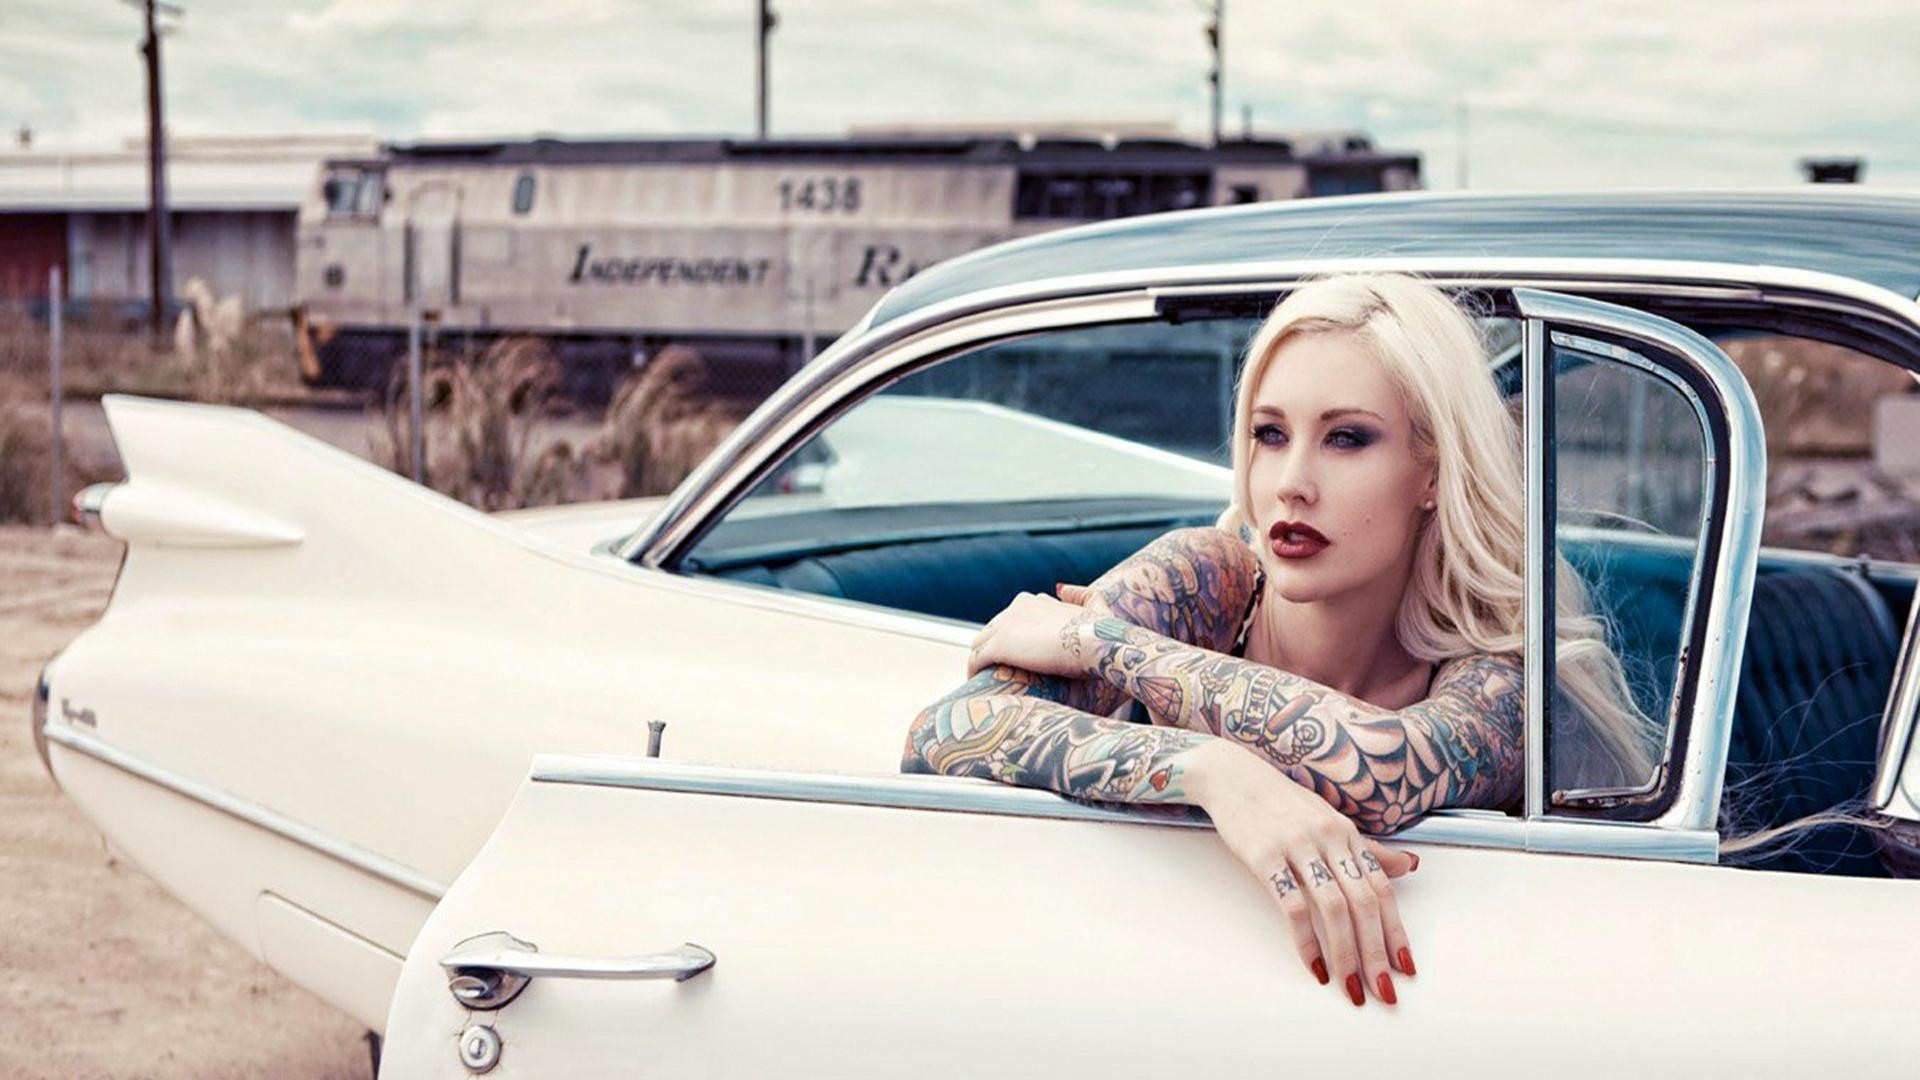 Sabina Kelley – Hot Rod Journal: http://hotrodjournal.com/2015/09/08/sabina-kelley/